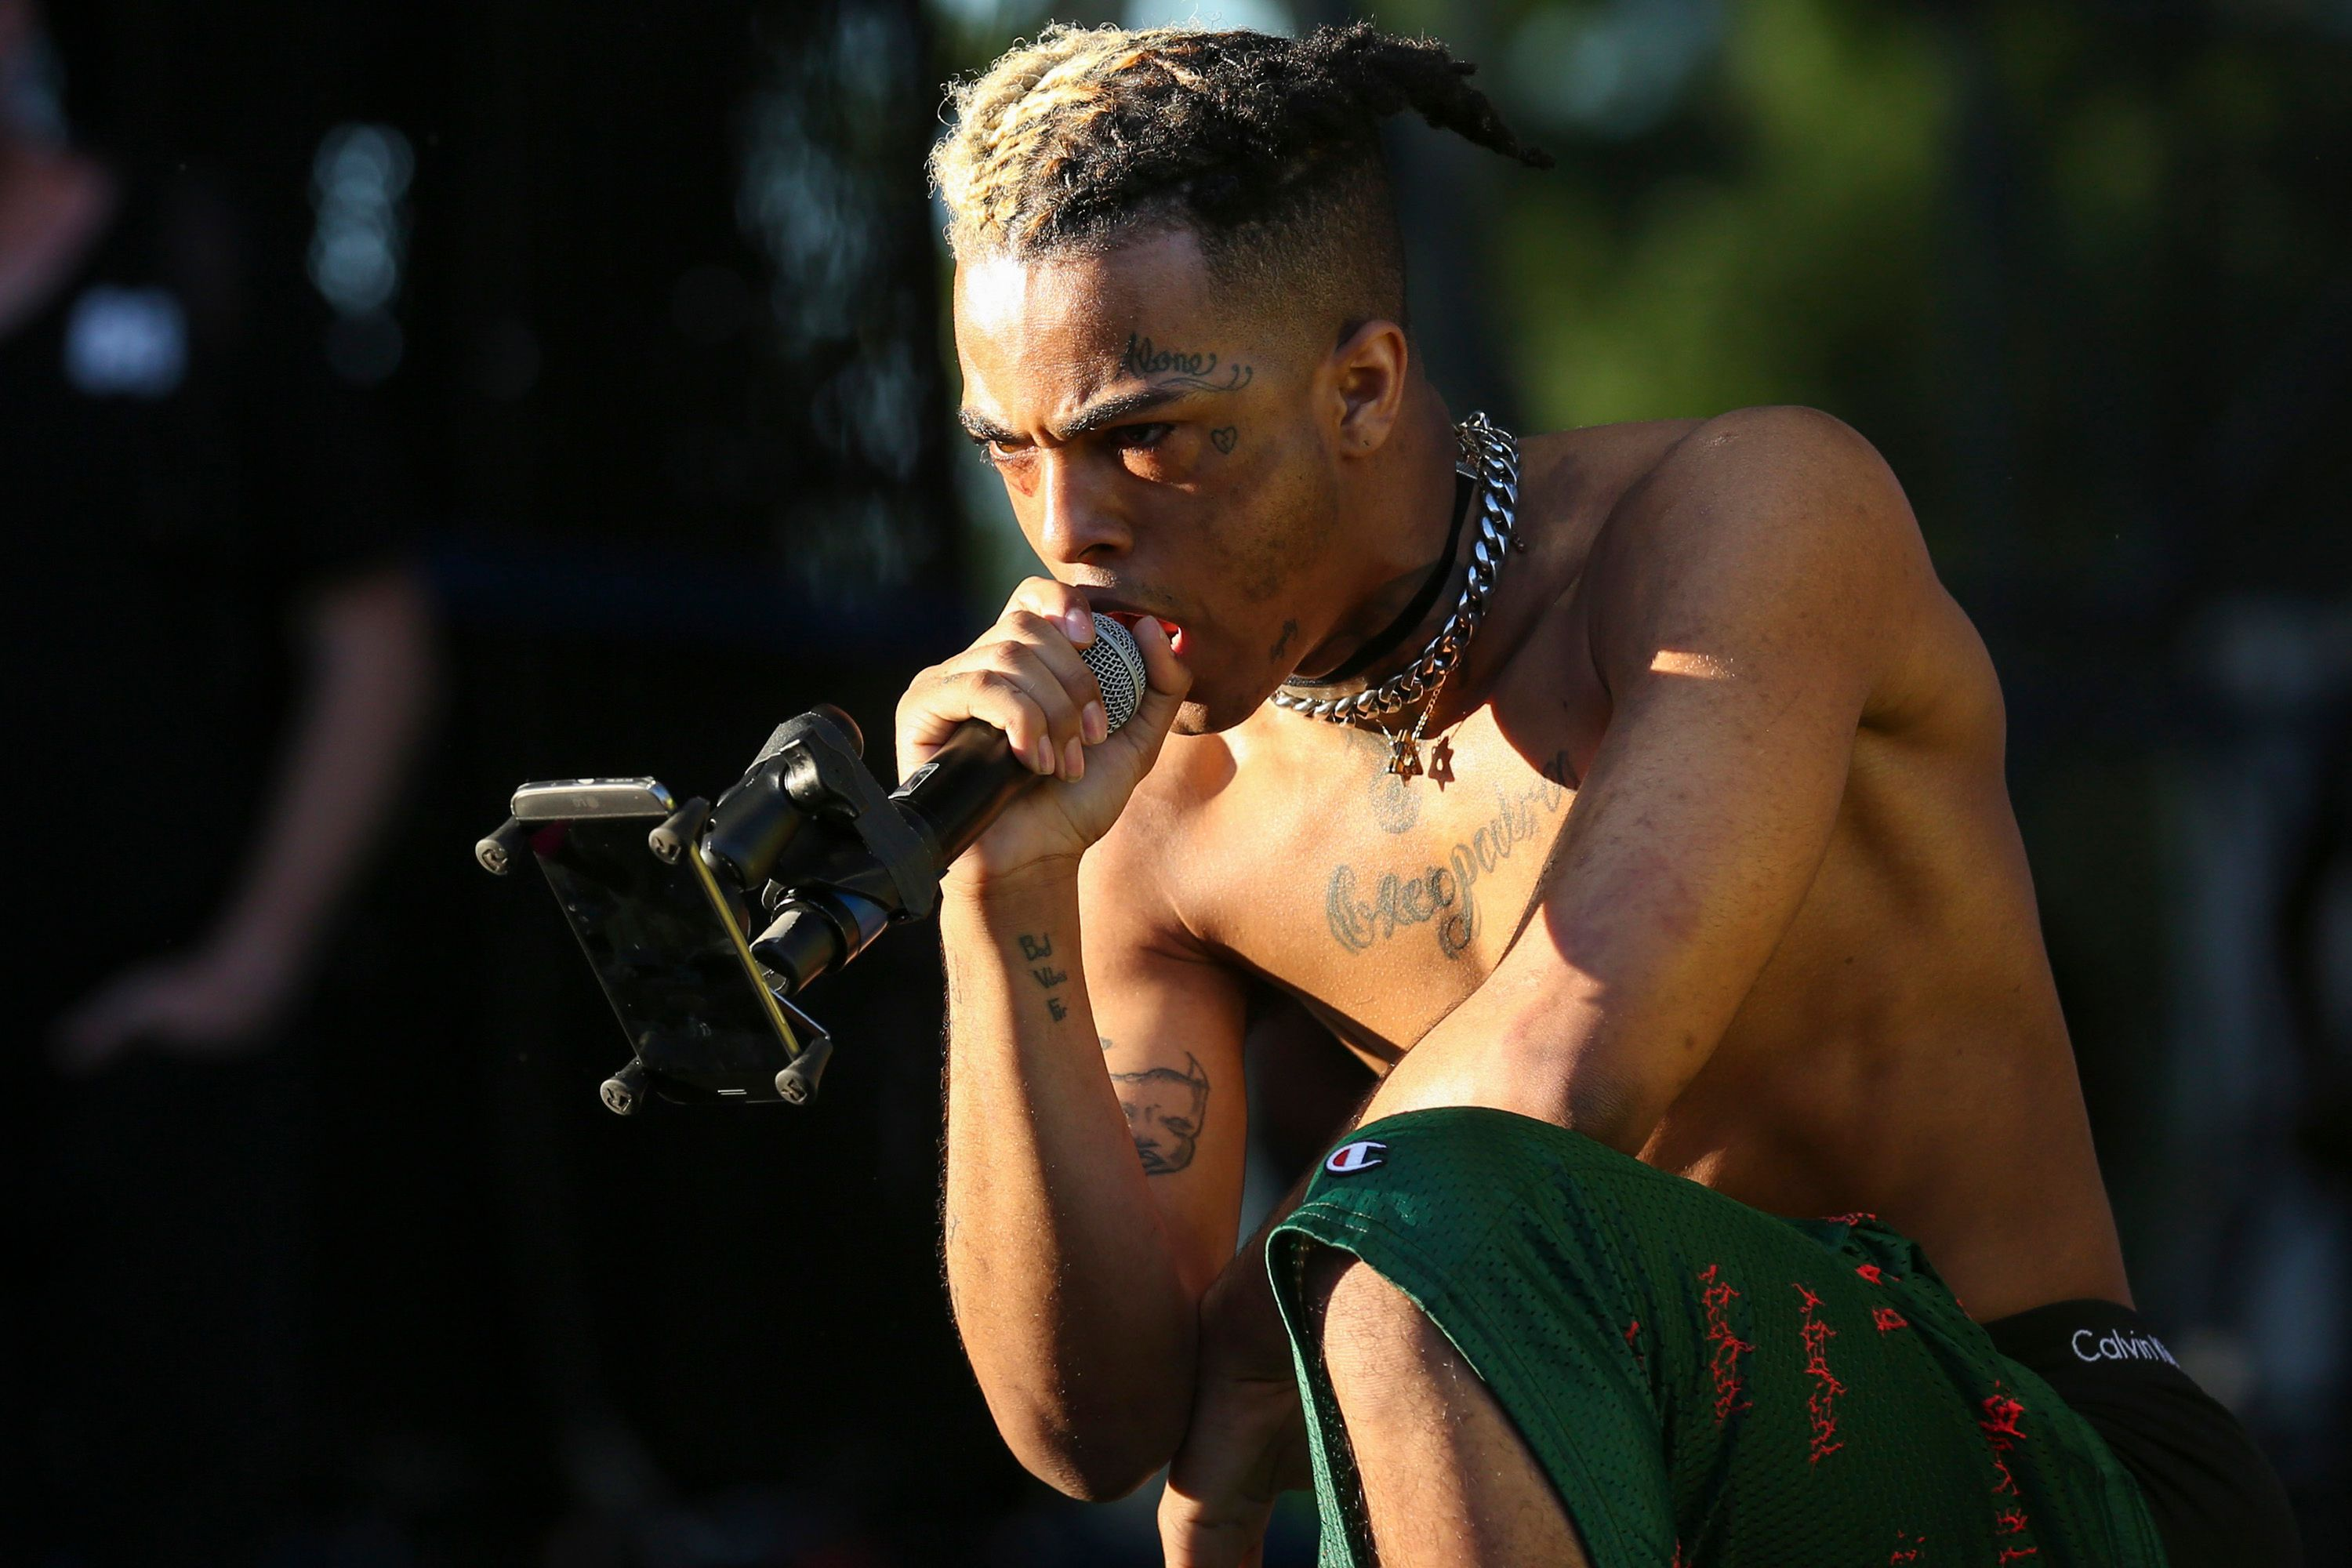 XXXTentacion performs during the second day of the Rolling Loud Festival in downtown Miami on Saturday, May 6, 2017. | Source: Getty Images